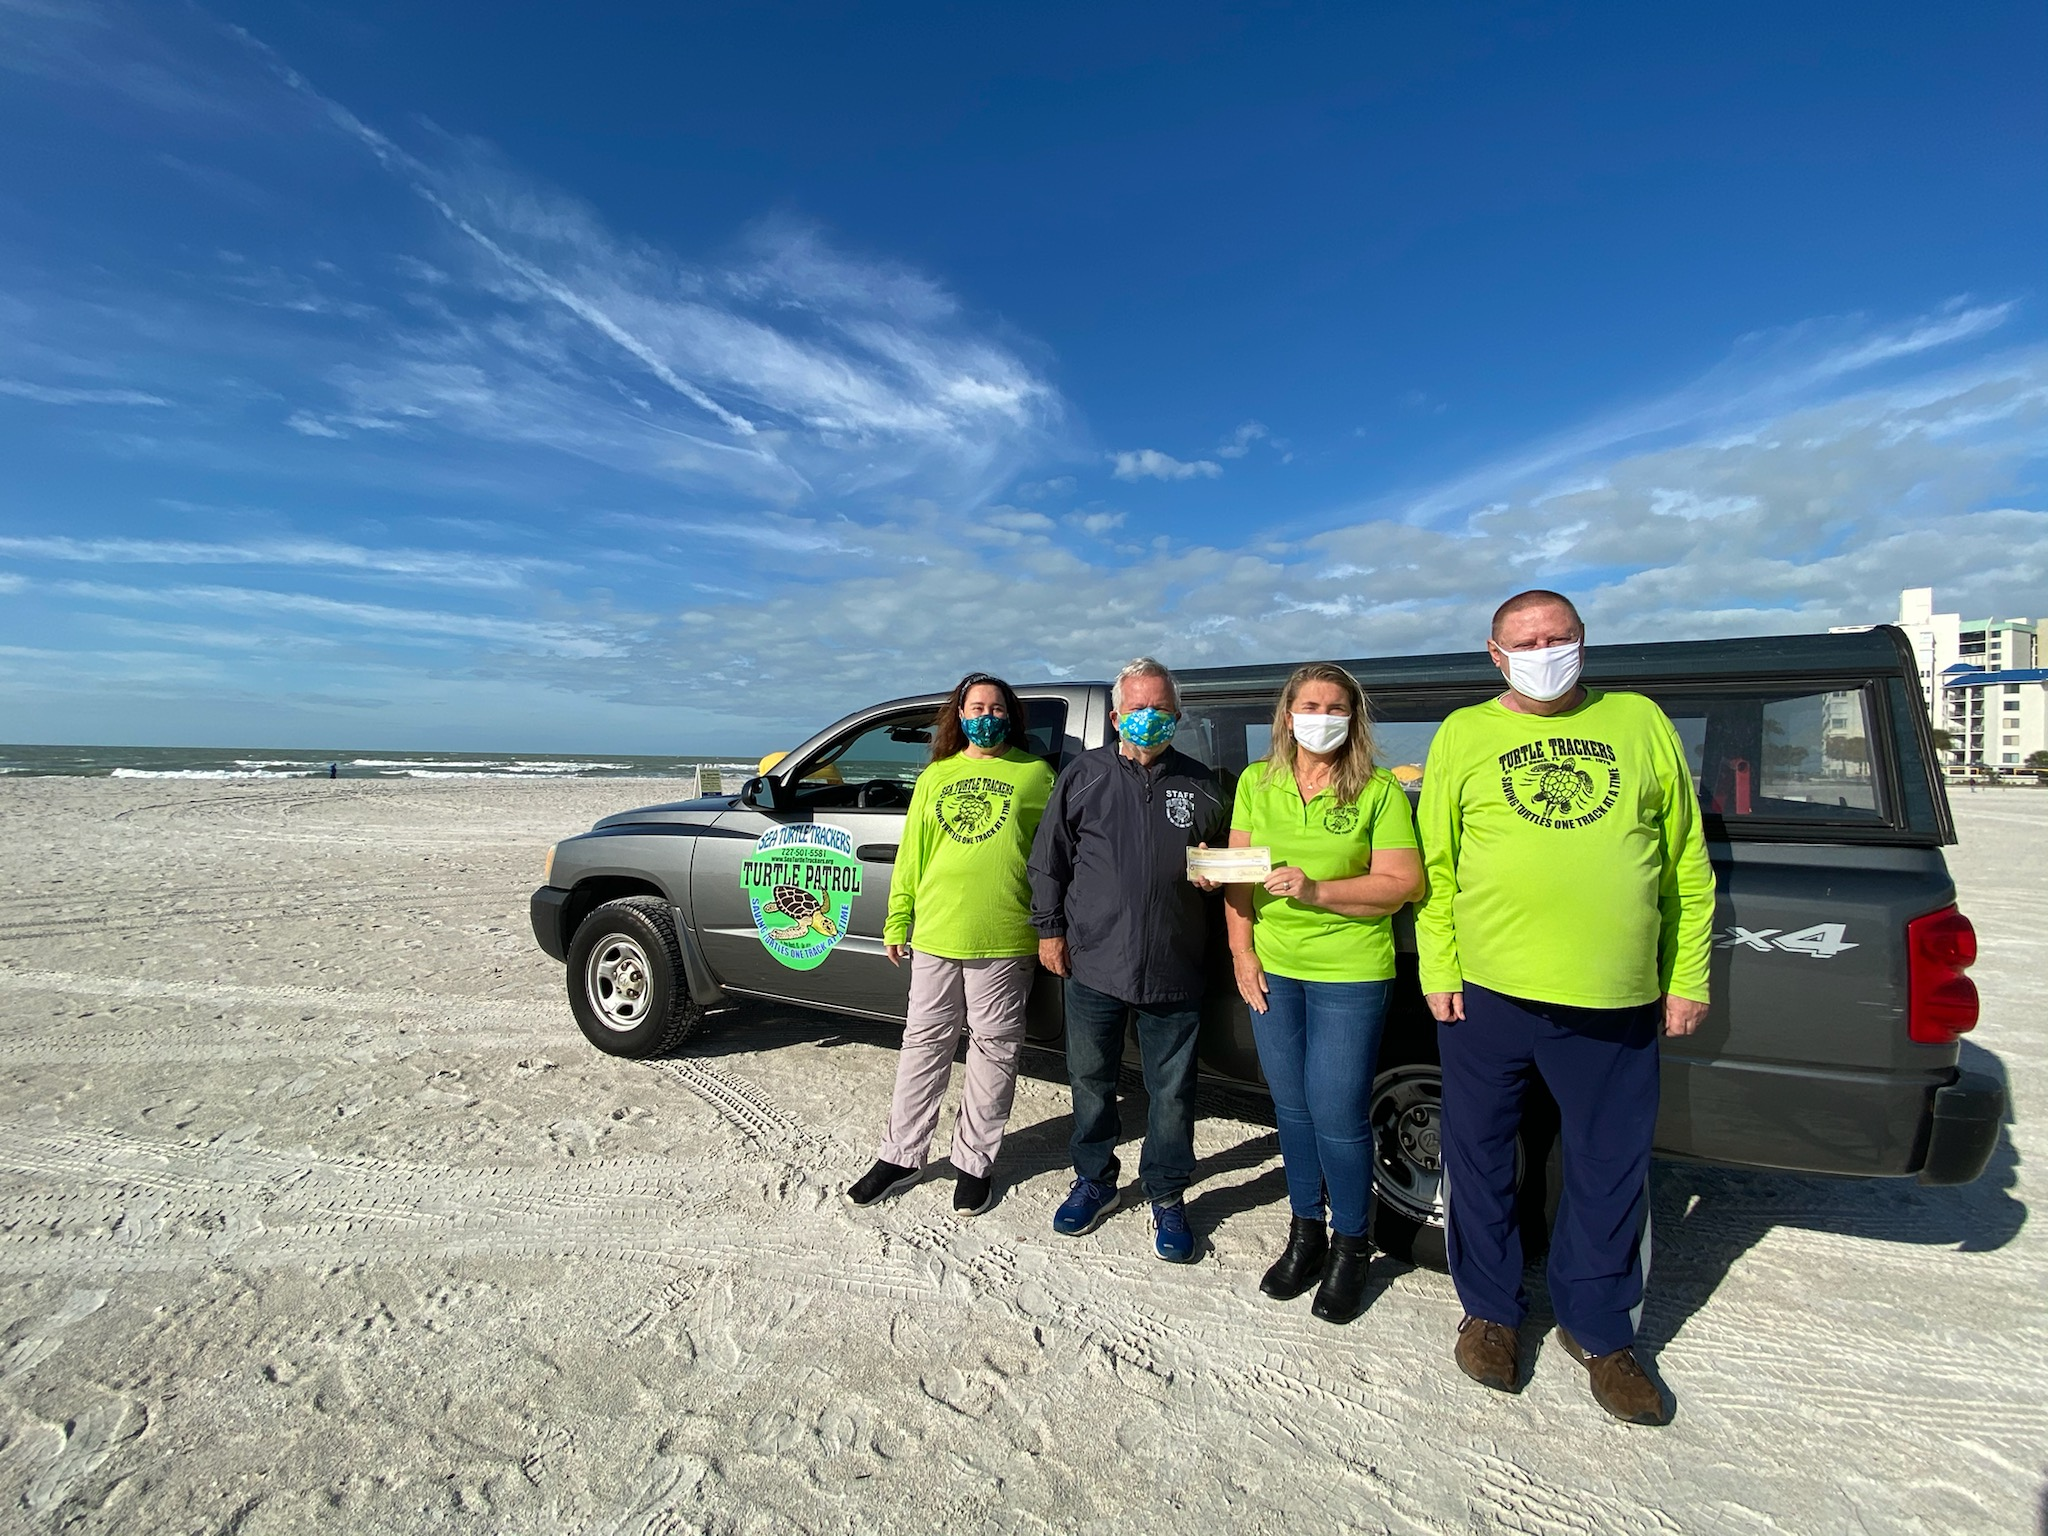 Four people standing next to a dark gray truck on a beach with a blue sky